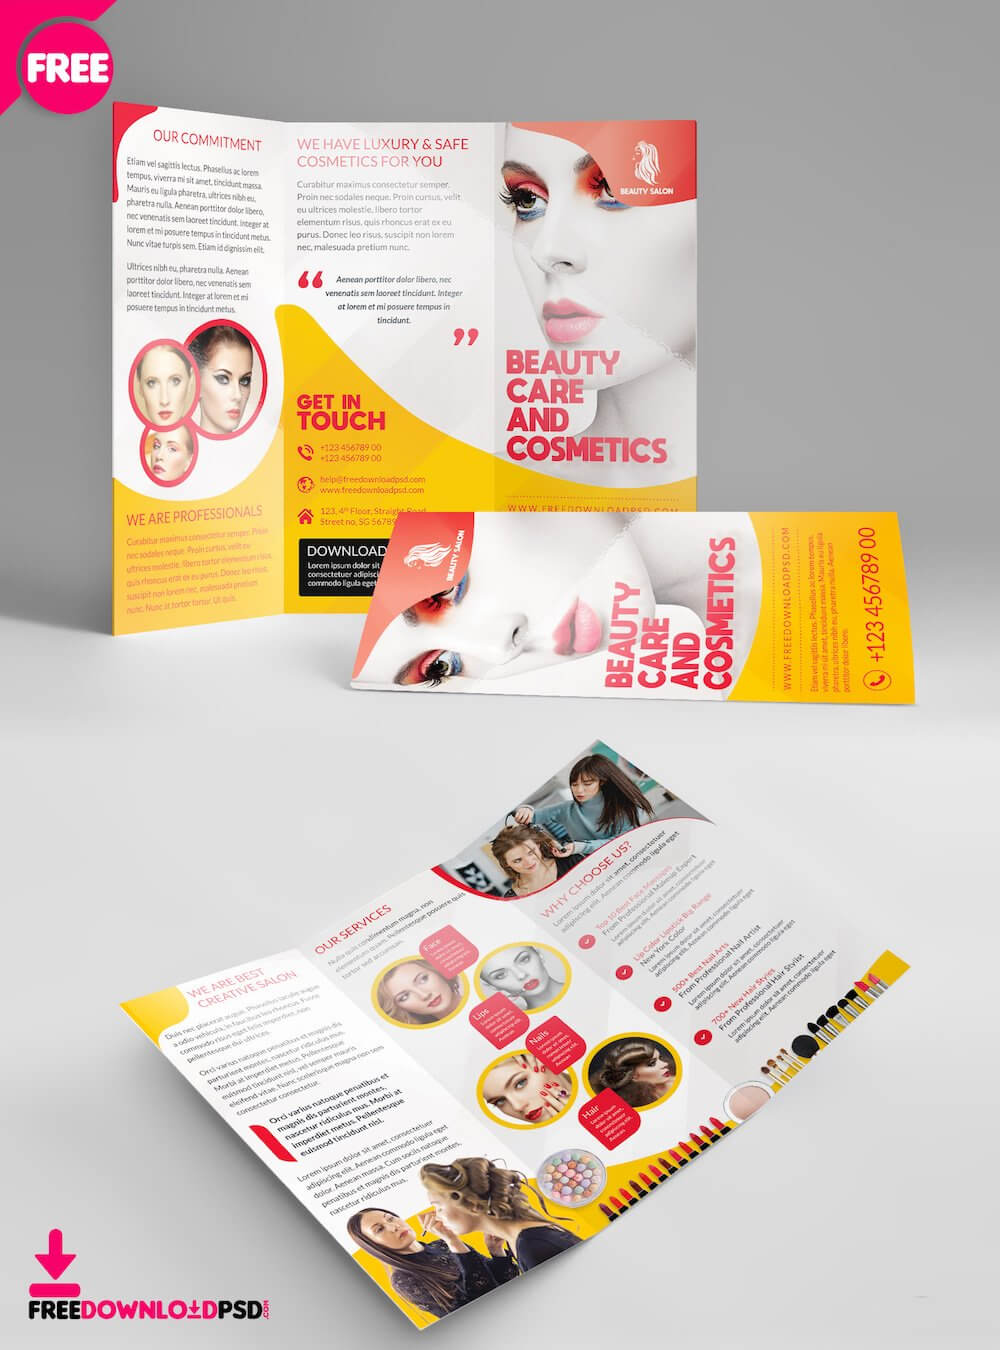 34 Best Free Brochure Mockups & Psd Templates 2019 - Colorlib Inside Single Page Brochure Templates Psd